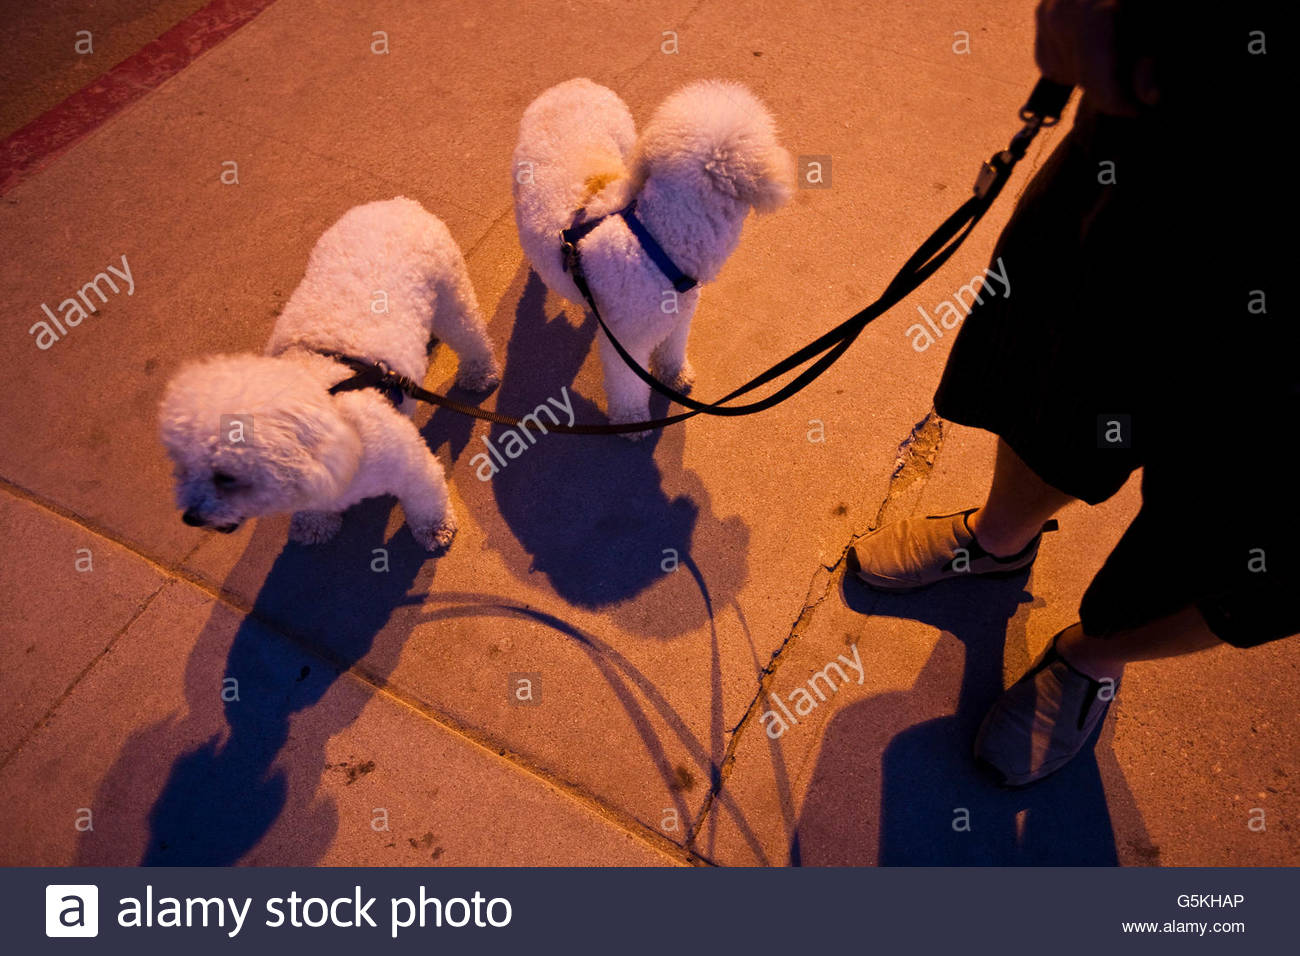 Two dwarf poodles on a leash on the Redondo Beach Seawalk at night - Stock Image